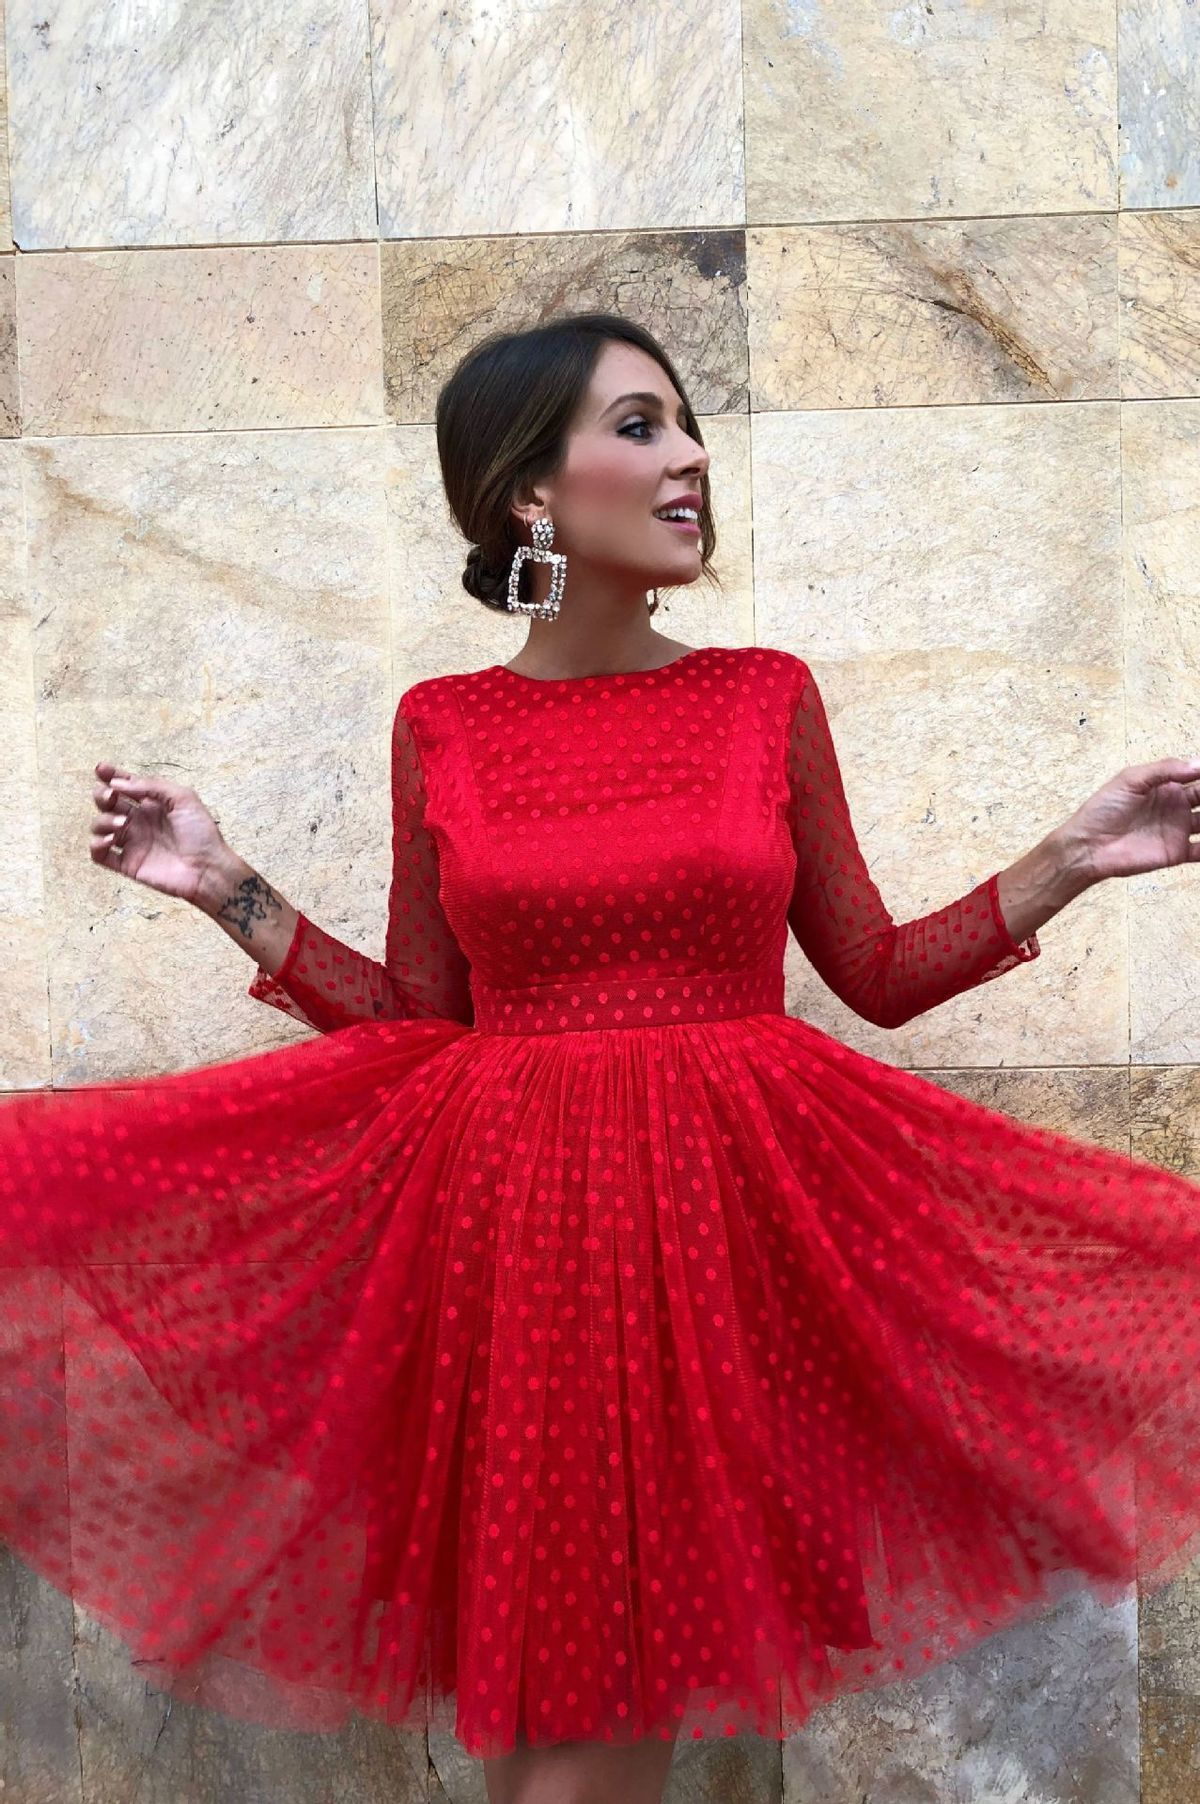 e3ce610203 Red Cocktail Dresses Cheap Long Sleeve Ball Gown Sexy Lace Backless Short  Party Gowns Mini Winter Cocktail Dresses-in Cocktail Dresses from Weddings  ...